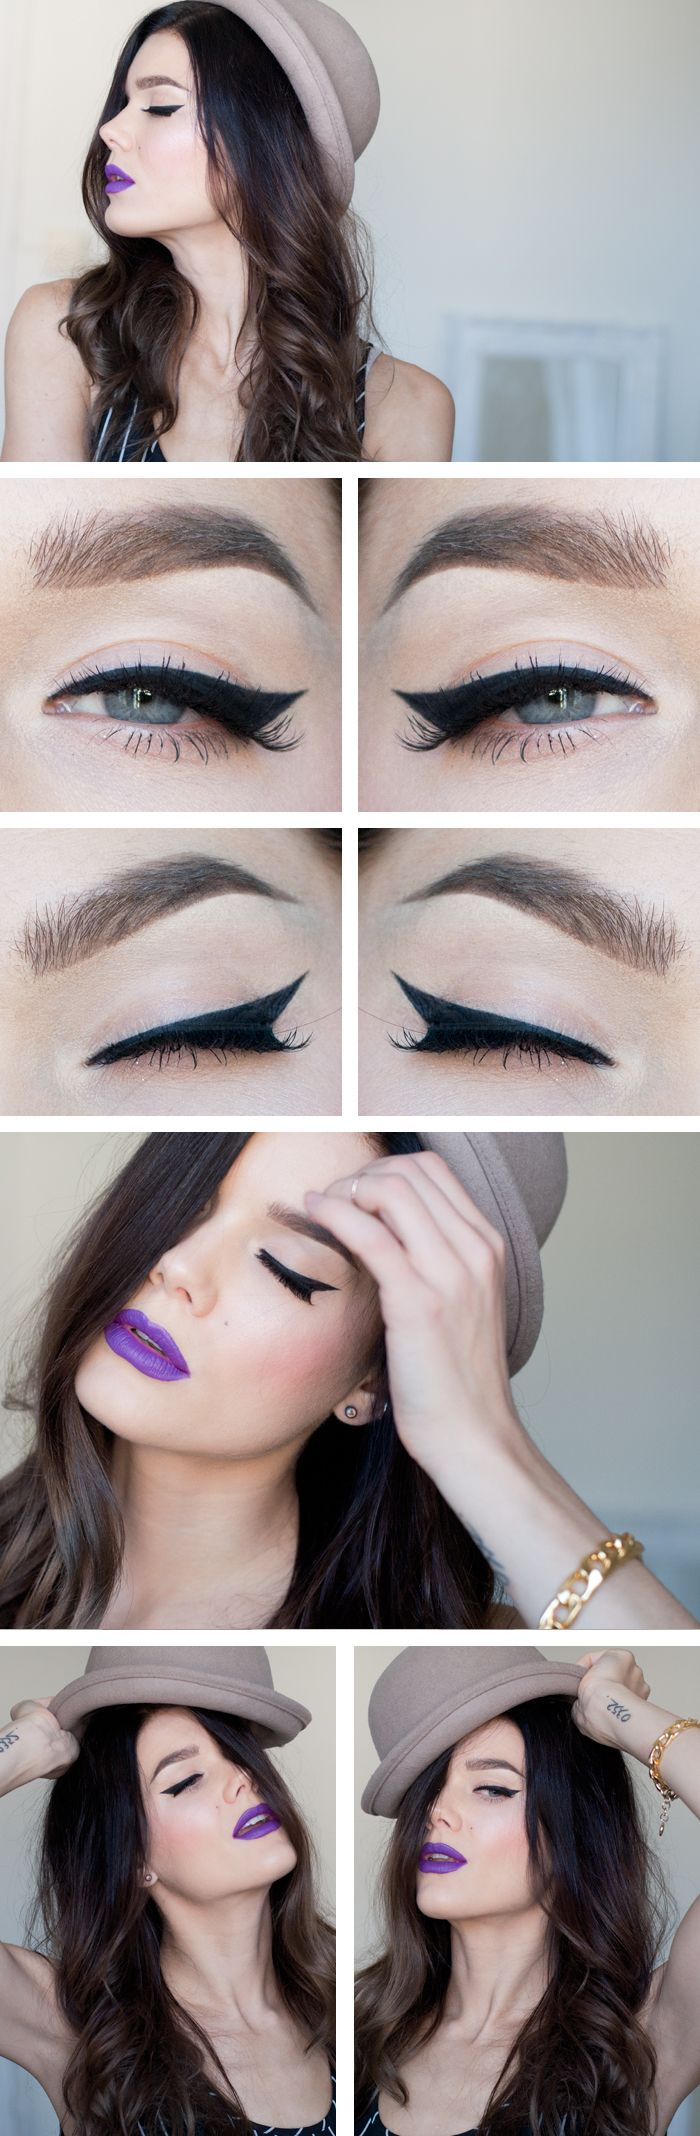 TODAYS LOOK - THE YOU WAY